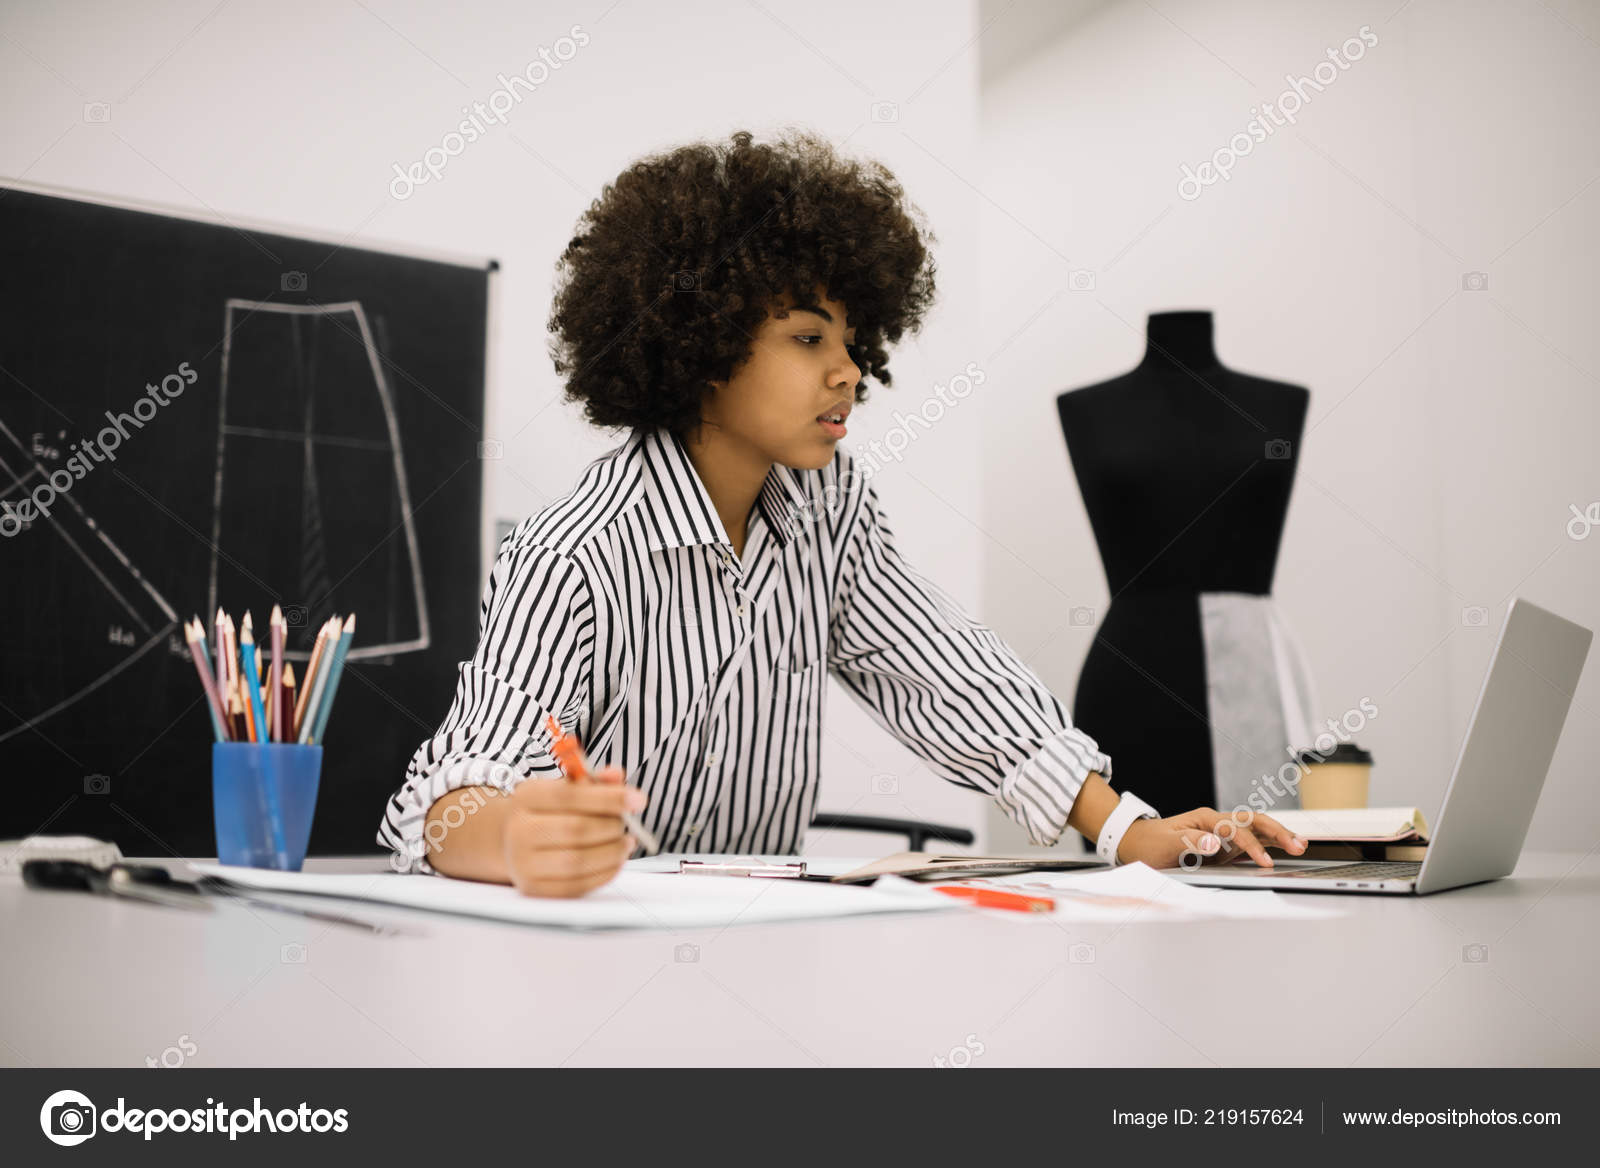 Fashion Designer Researching New Fabric Textures Online Using Laptop Computer Stock Photo C Oleksii Didok 219157624